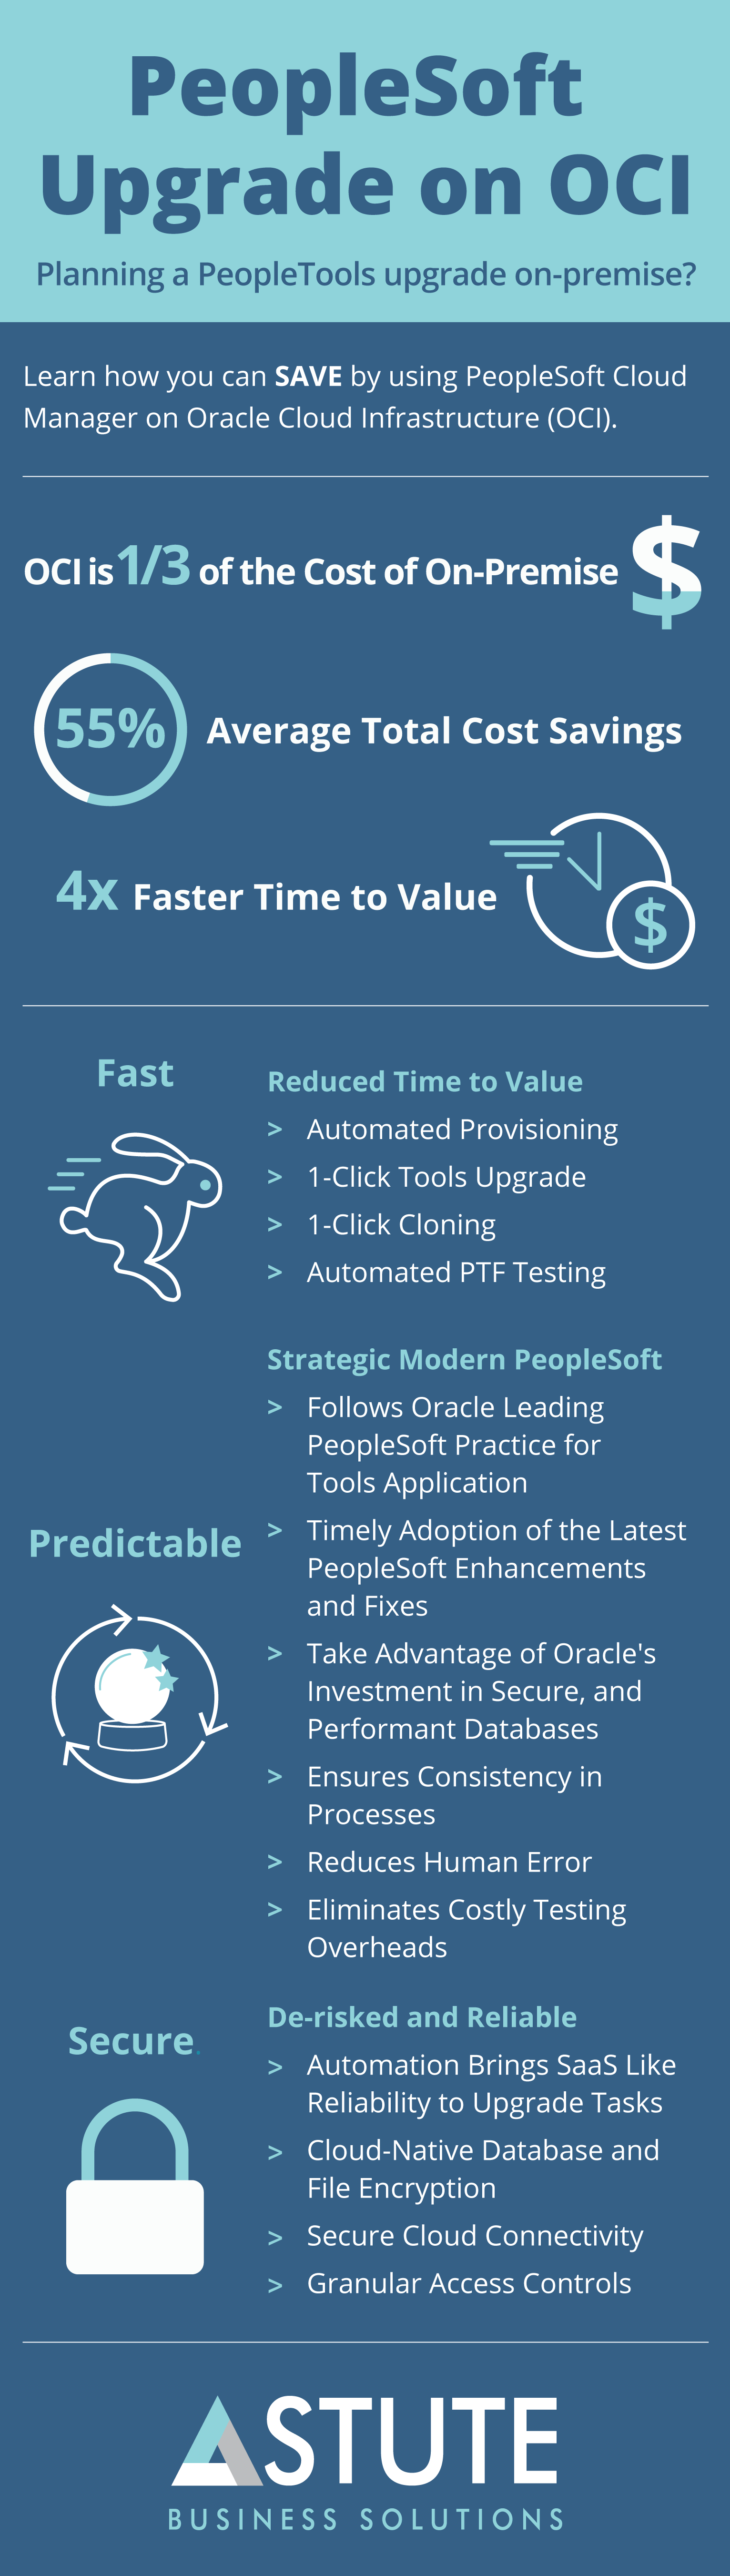 020721_PeopleSoft_Upgrade_Infographic_FINAL-01